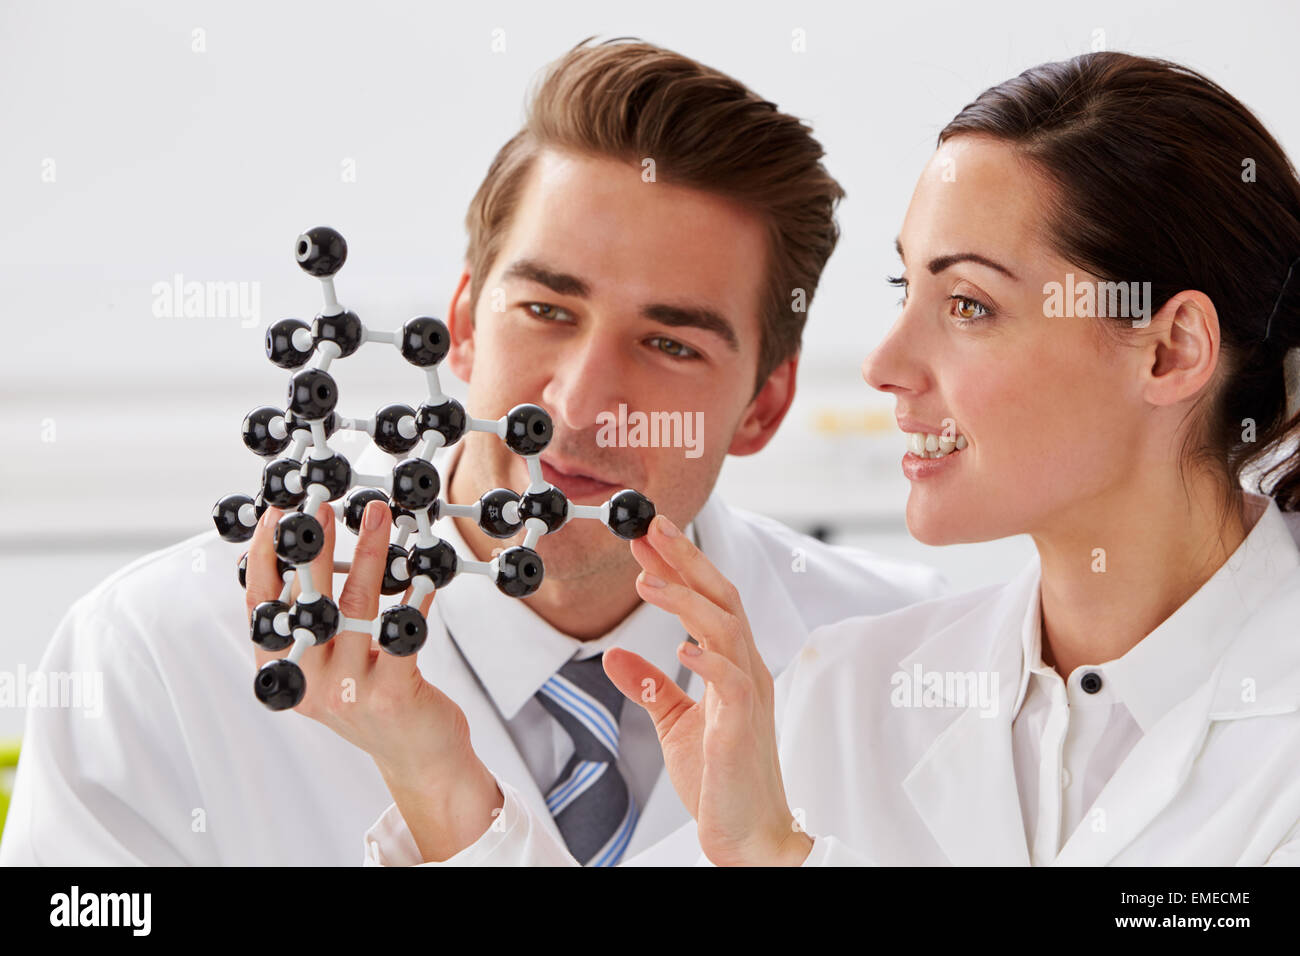 Two Technicians Looking At Molecular Model In Laboratory - Stock Image